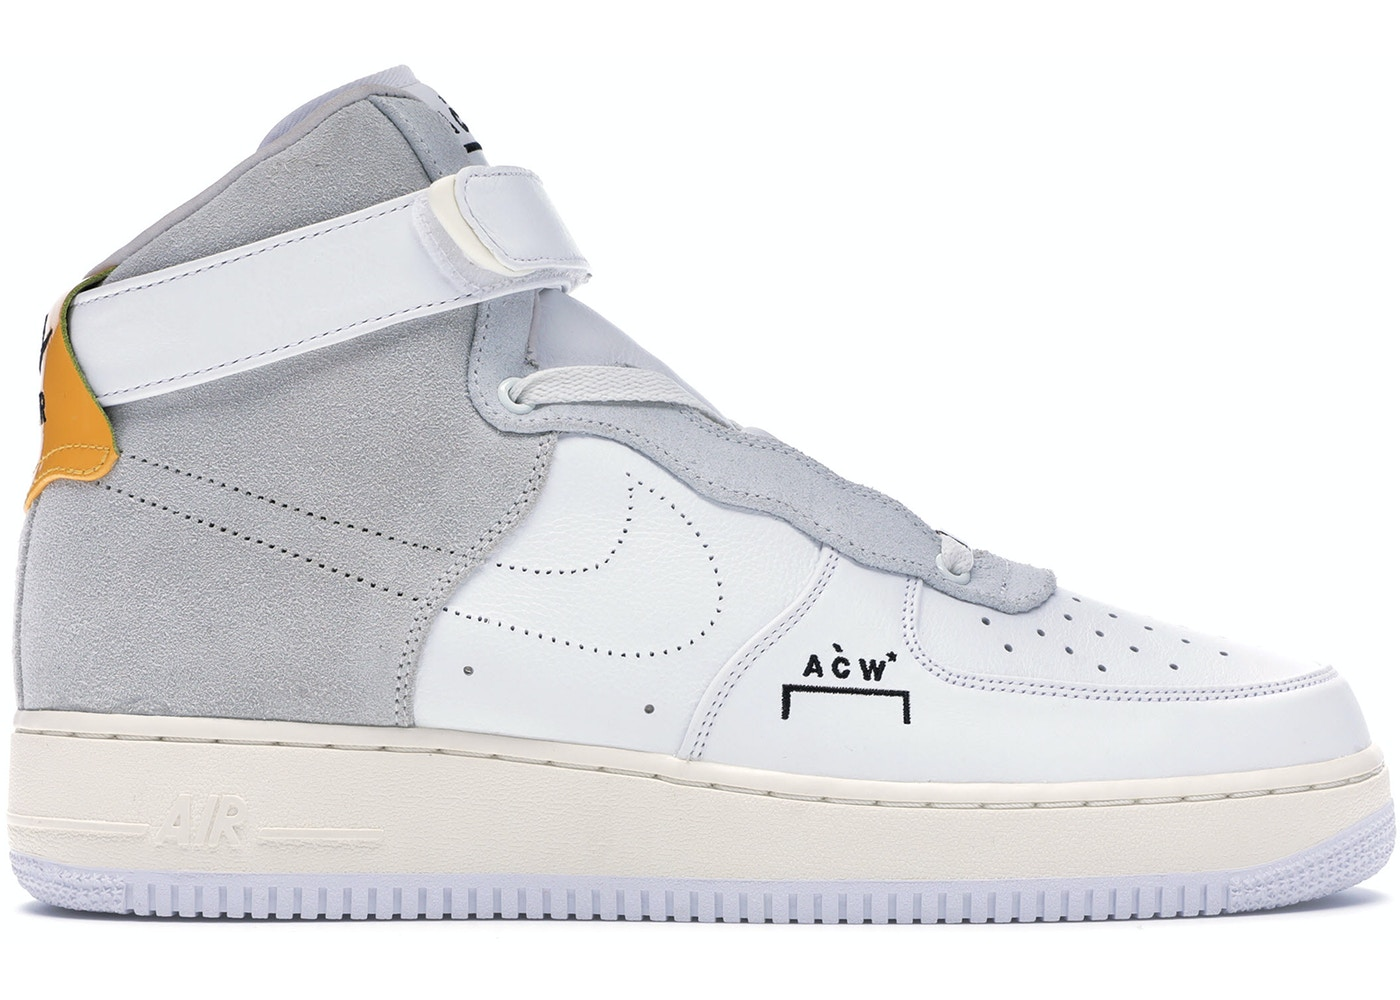 outlet store 8d75f e7f89 Air Force 1 High A-COLD-WALL - AQ5644 991